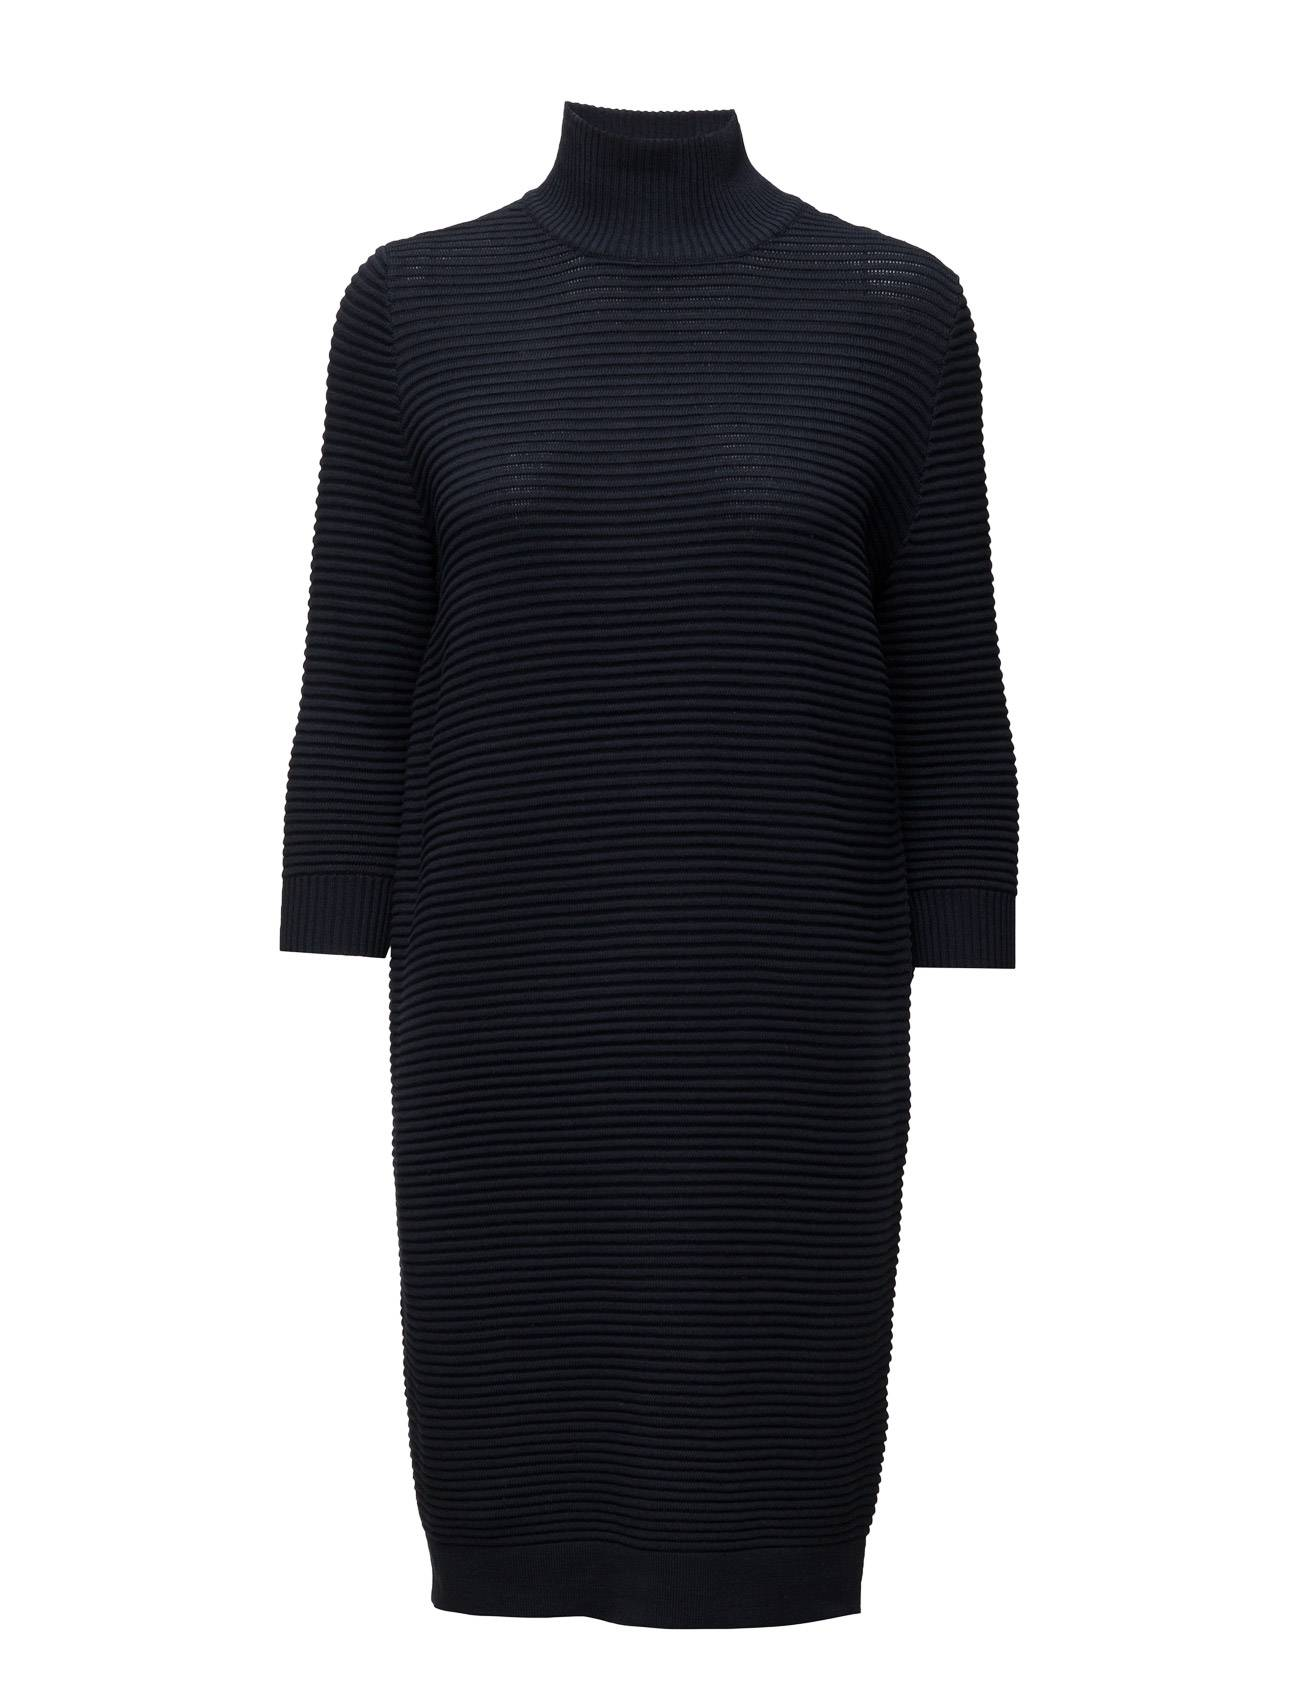 Selected Femme Sflaua 3/4 High Neck Knit Dress